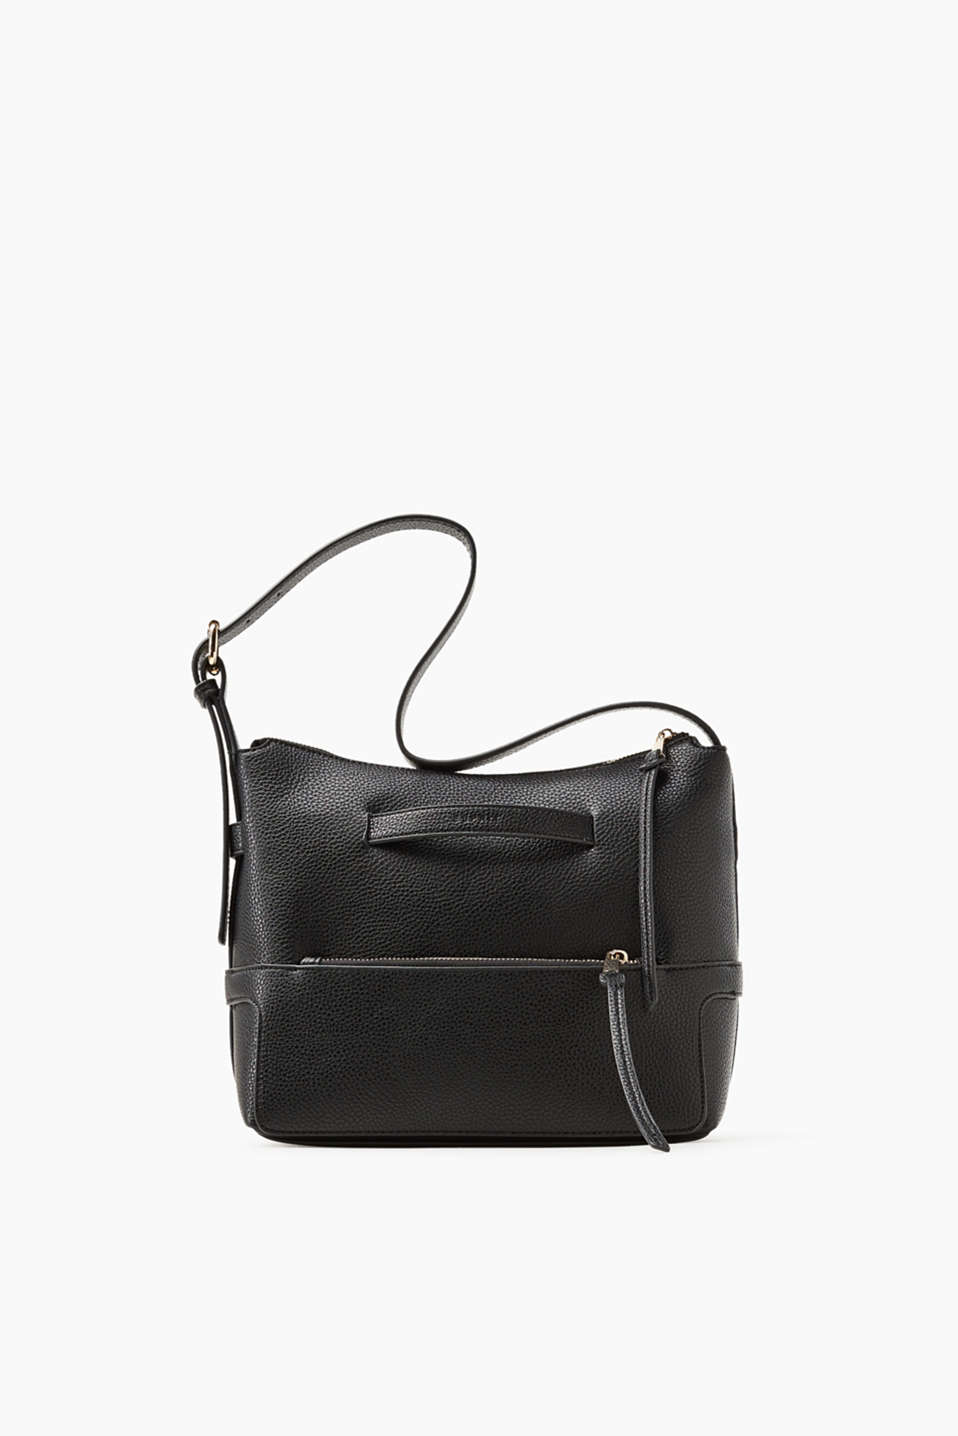 Compact and elegant! This shoulder bag impresses with its authentic-looking faux leather and timeless design.